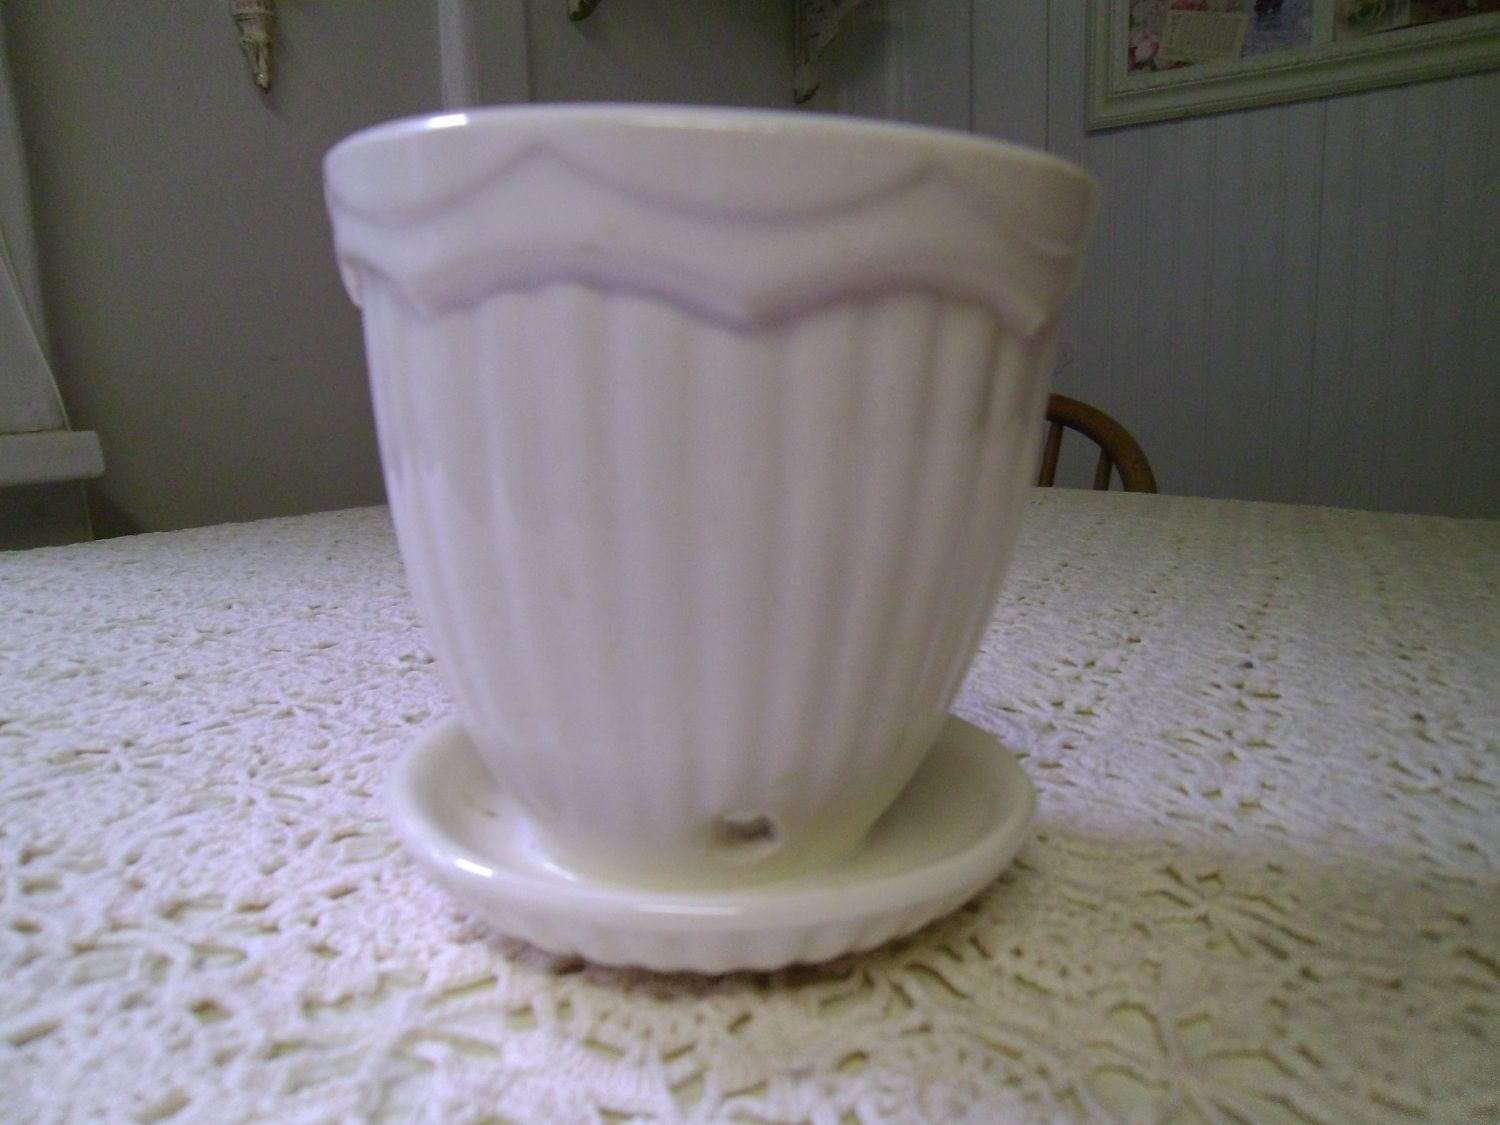 Vintage Flower Pot With Attached Saucer Vintage Flower Pots Flower Pots Vintage Pottery